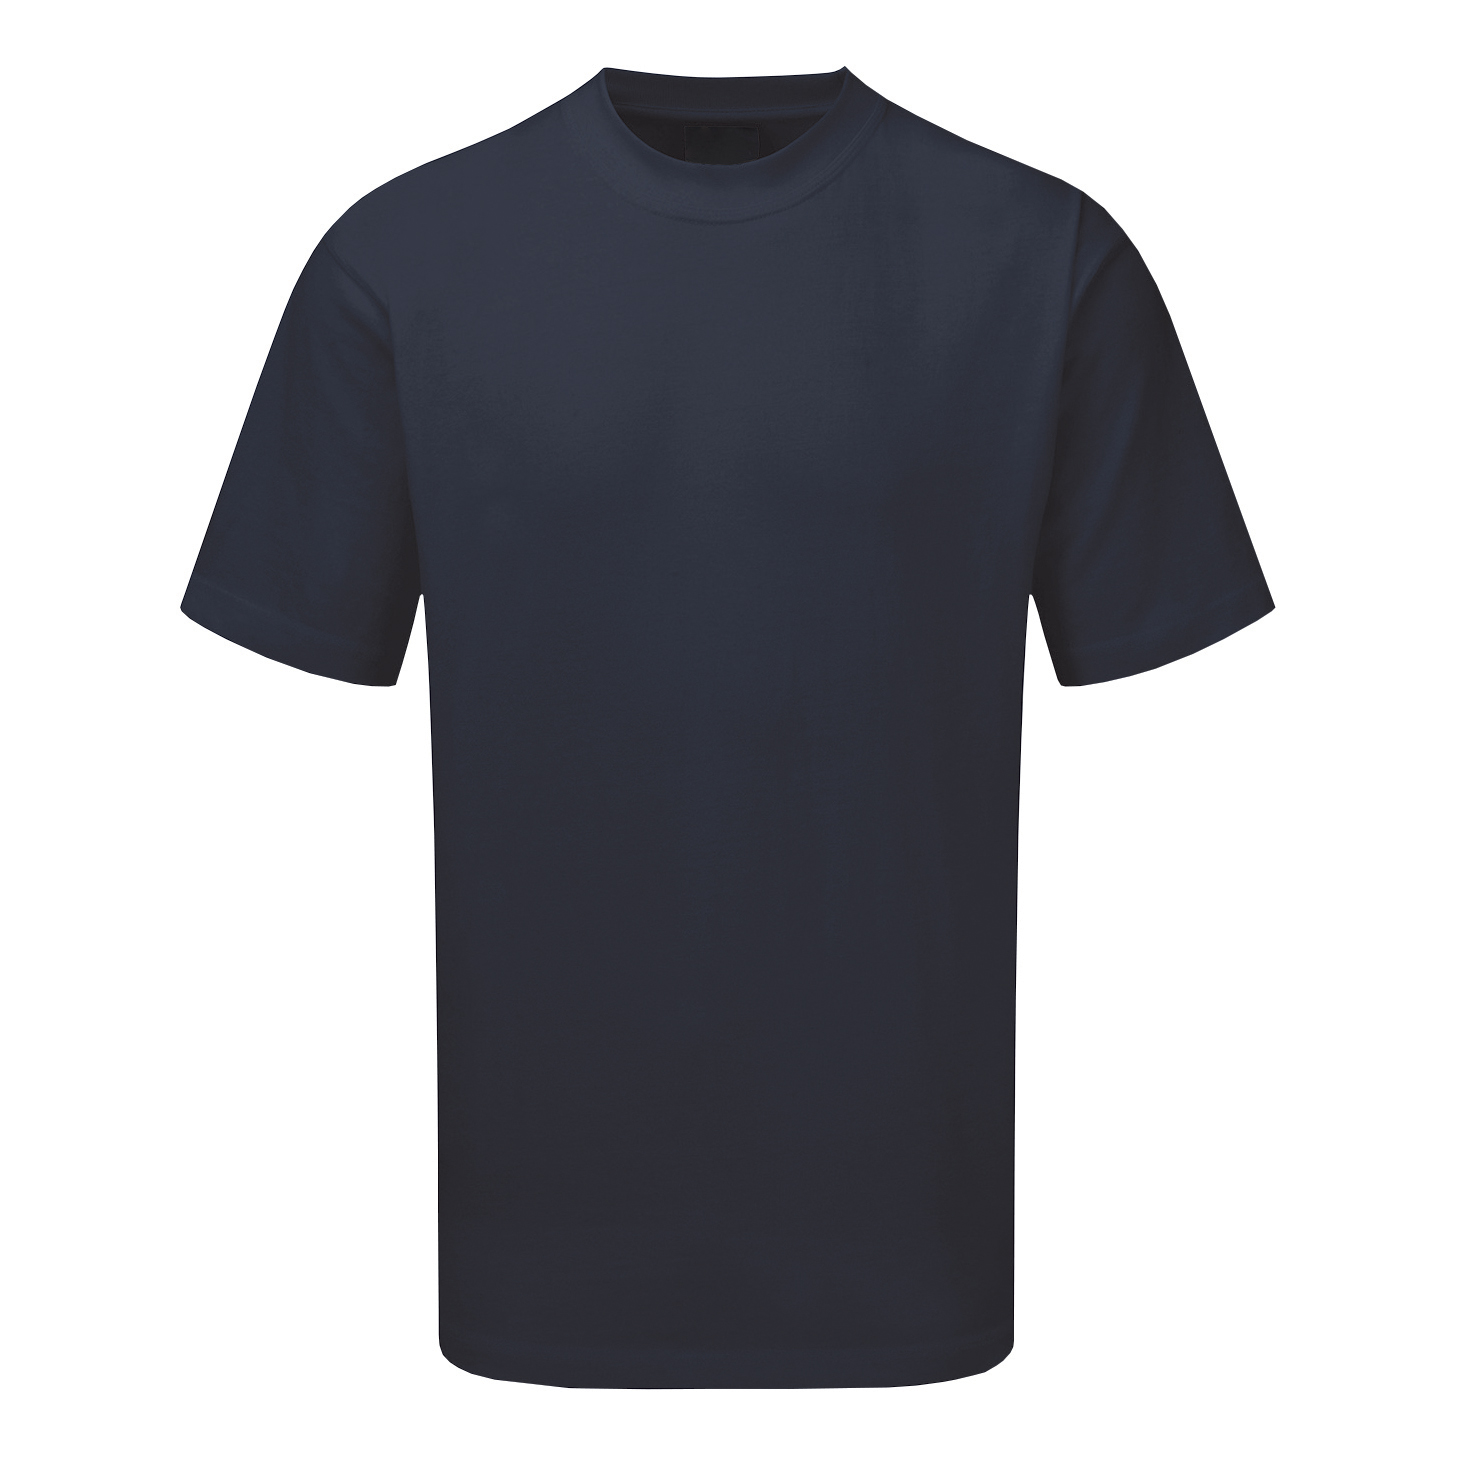 Premium T-Shirt Polycotton Triple Stitched 2XL Navy Blue Ref CLCTSHWNXXL *Up to 3 Day Leadtime*